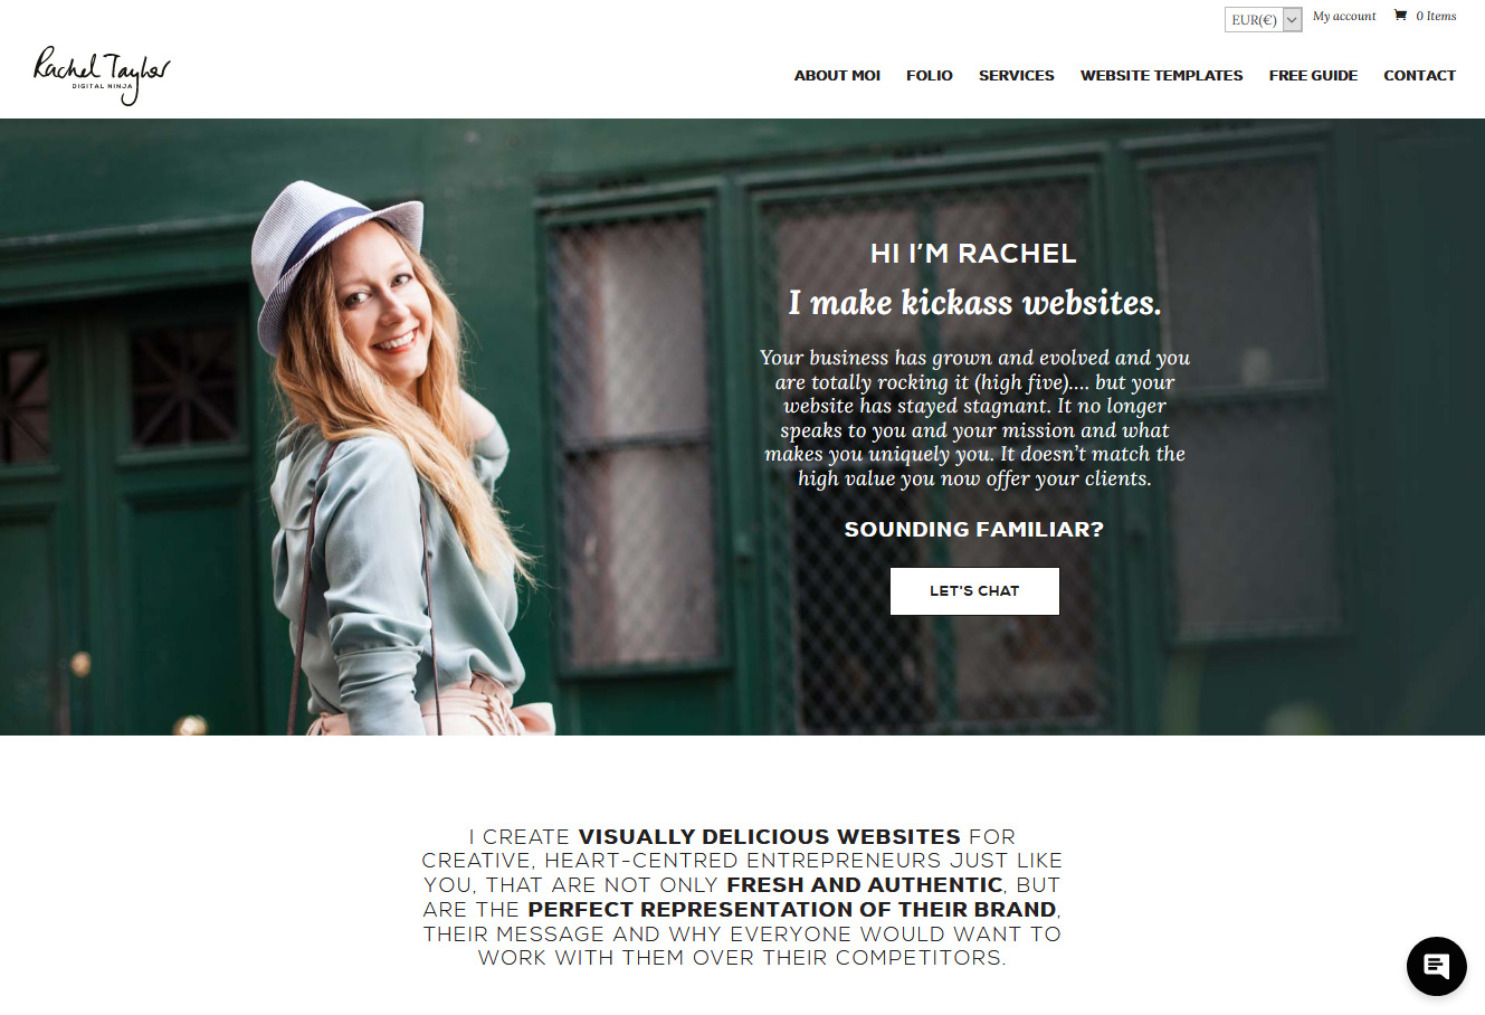 Rachel Taylor Web Developer Using Divi WordPress Theme